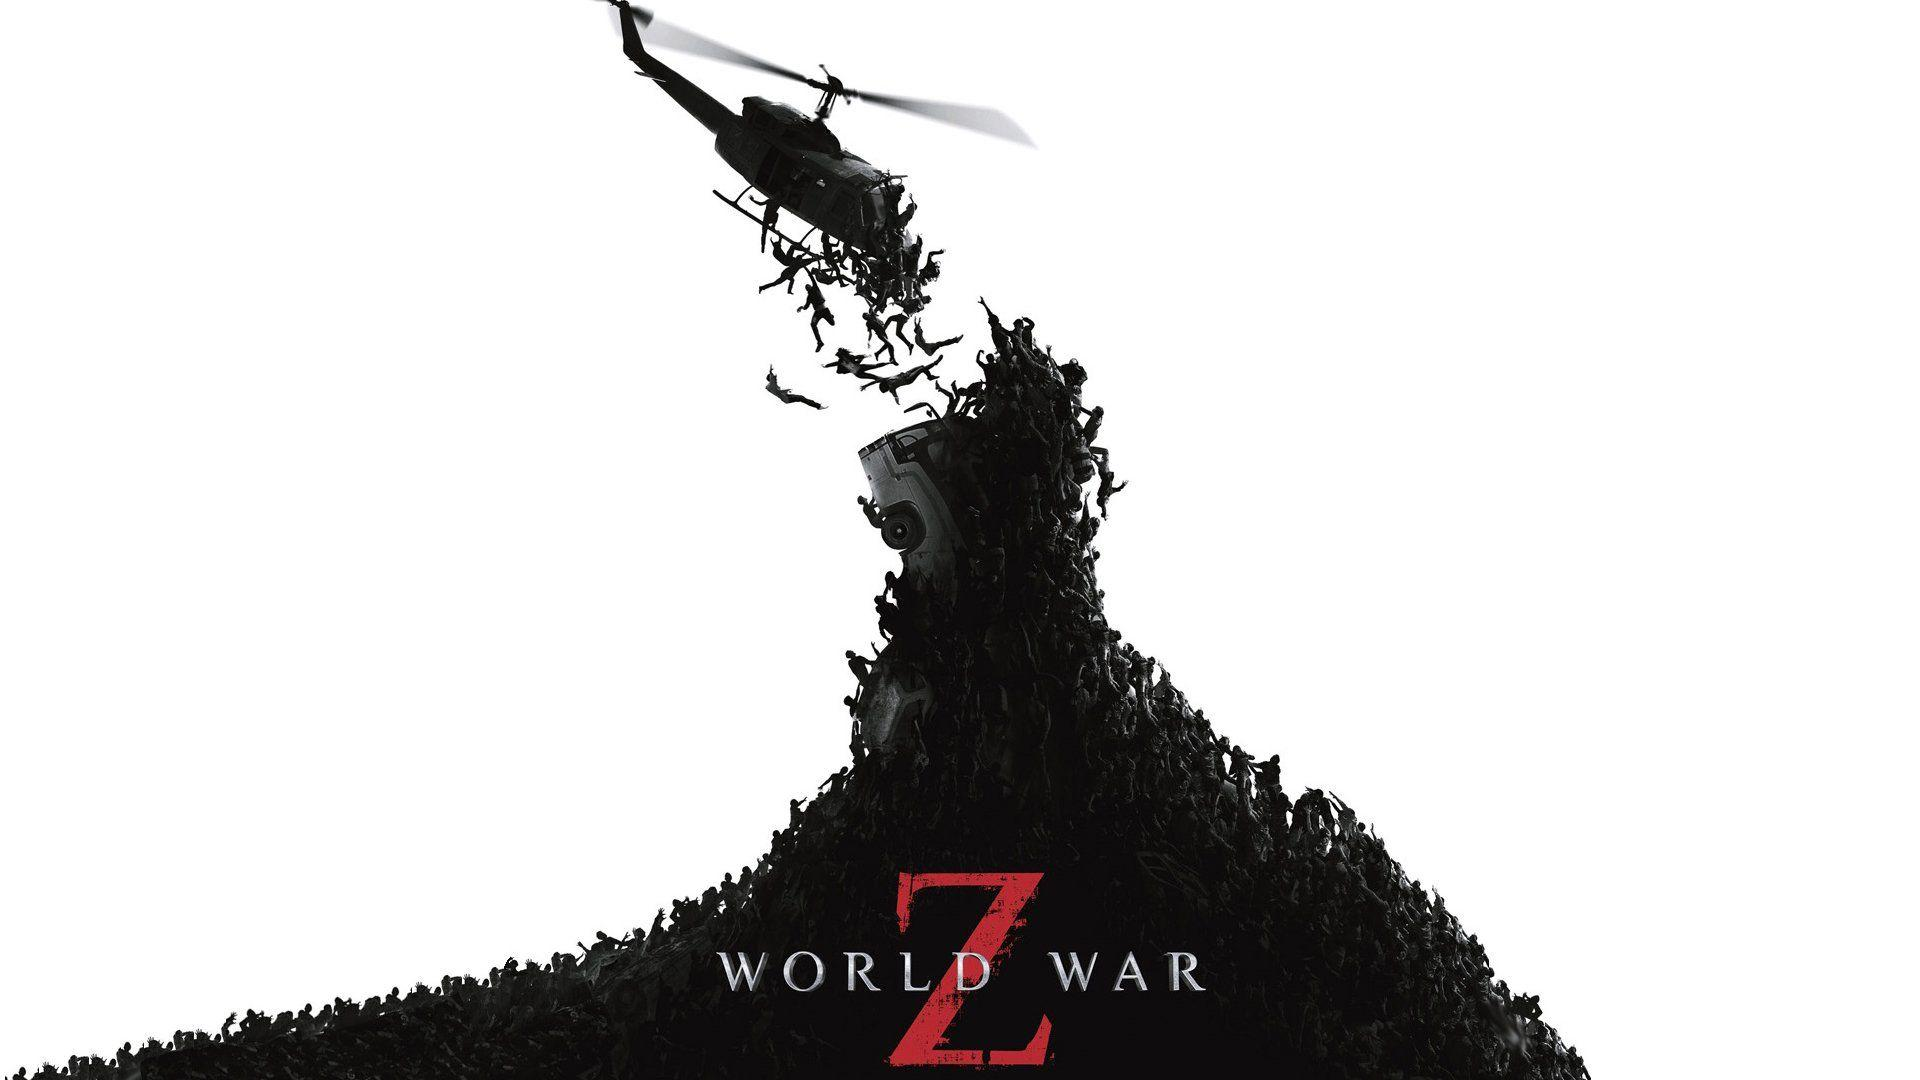 Top world war z wallpaper hd HQ Download   Wallpapers Book   Your 1920x1080